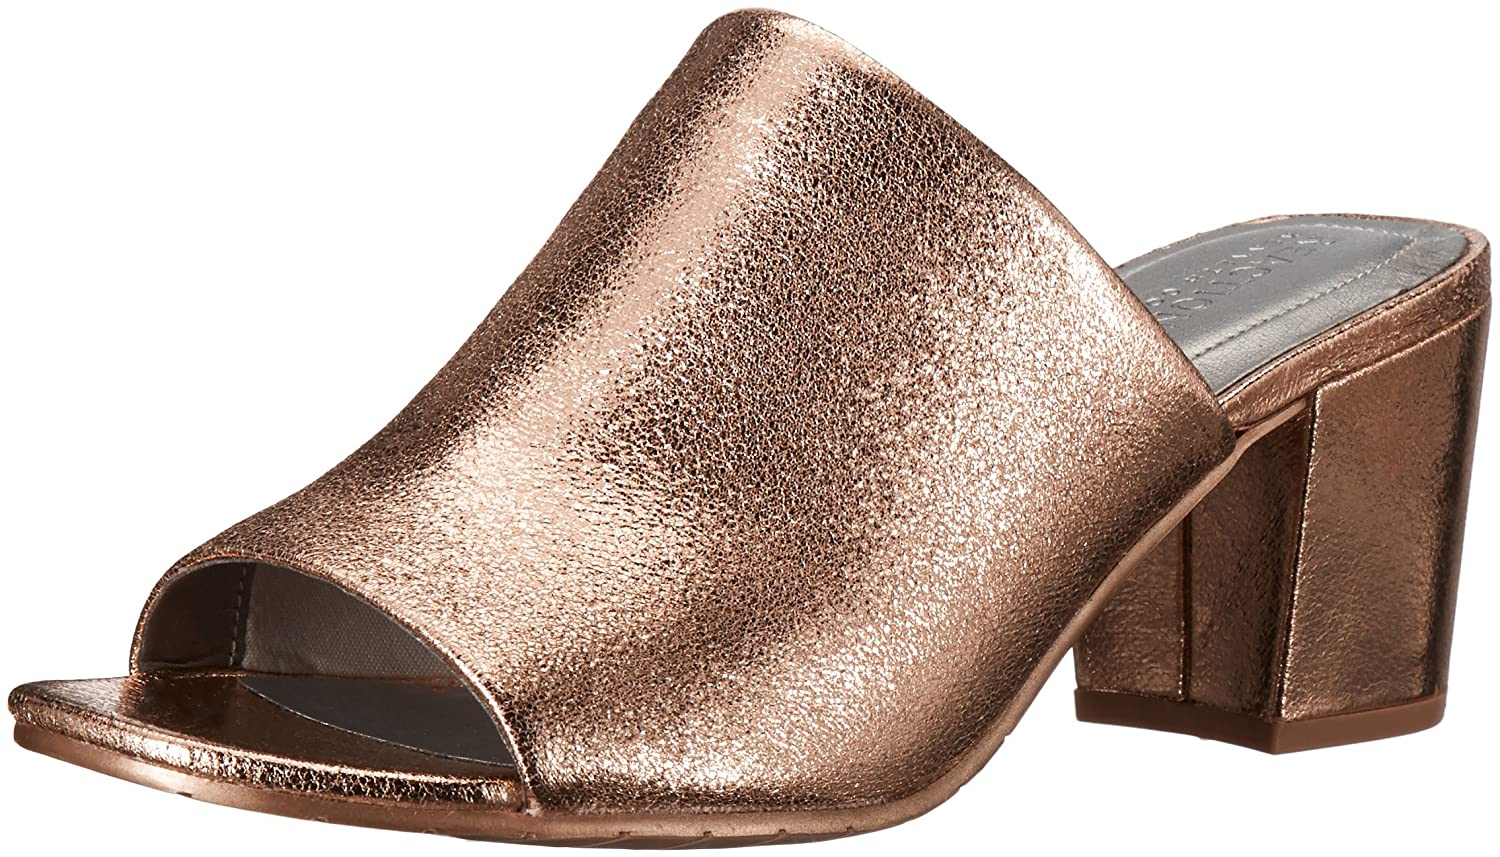 Kenneth Cole REACTION Women's Mass-TER Mind Open Toe Block Heel Metallic Slide Pump B06ZZRPZML 7.5 B(M) US|Rose Gold